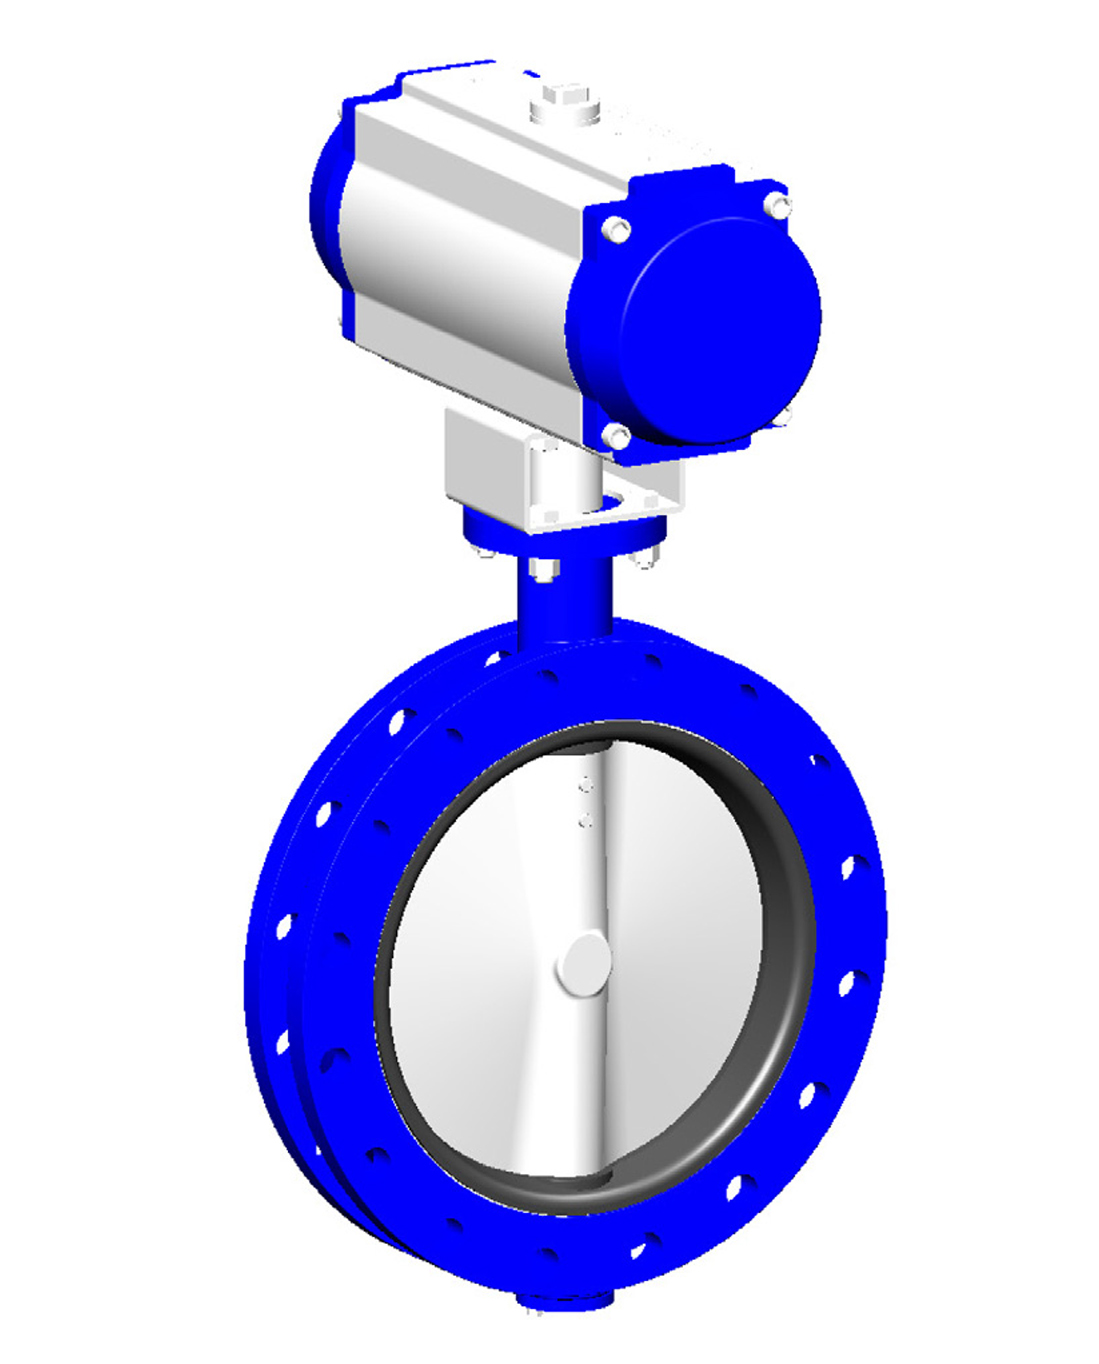 Double flanges type butterfly valve PN10 – ductile iron body – ductile iron disc – double acting pneumatic operator